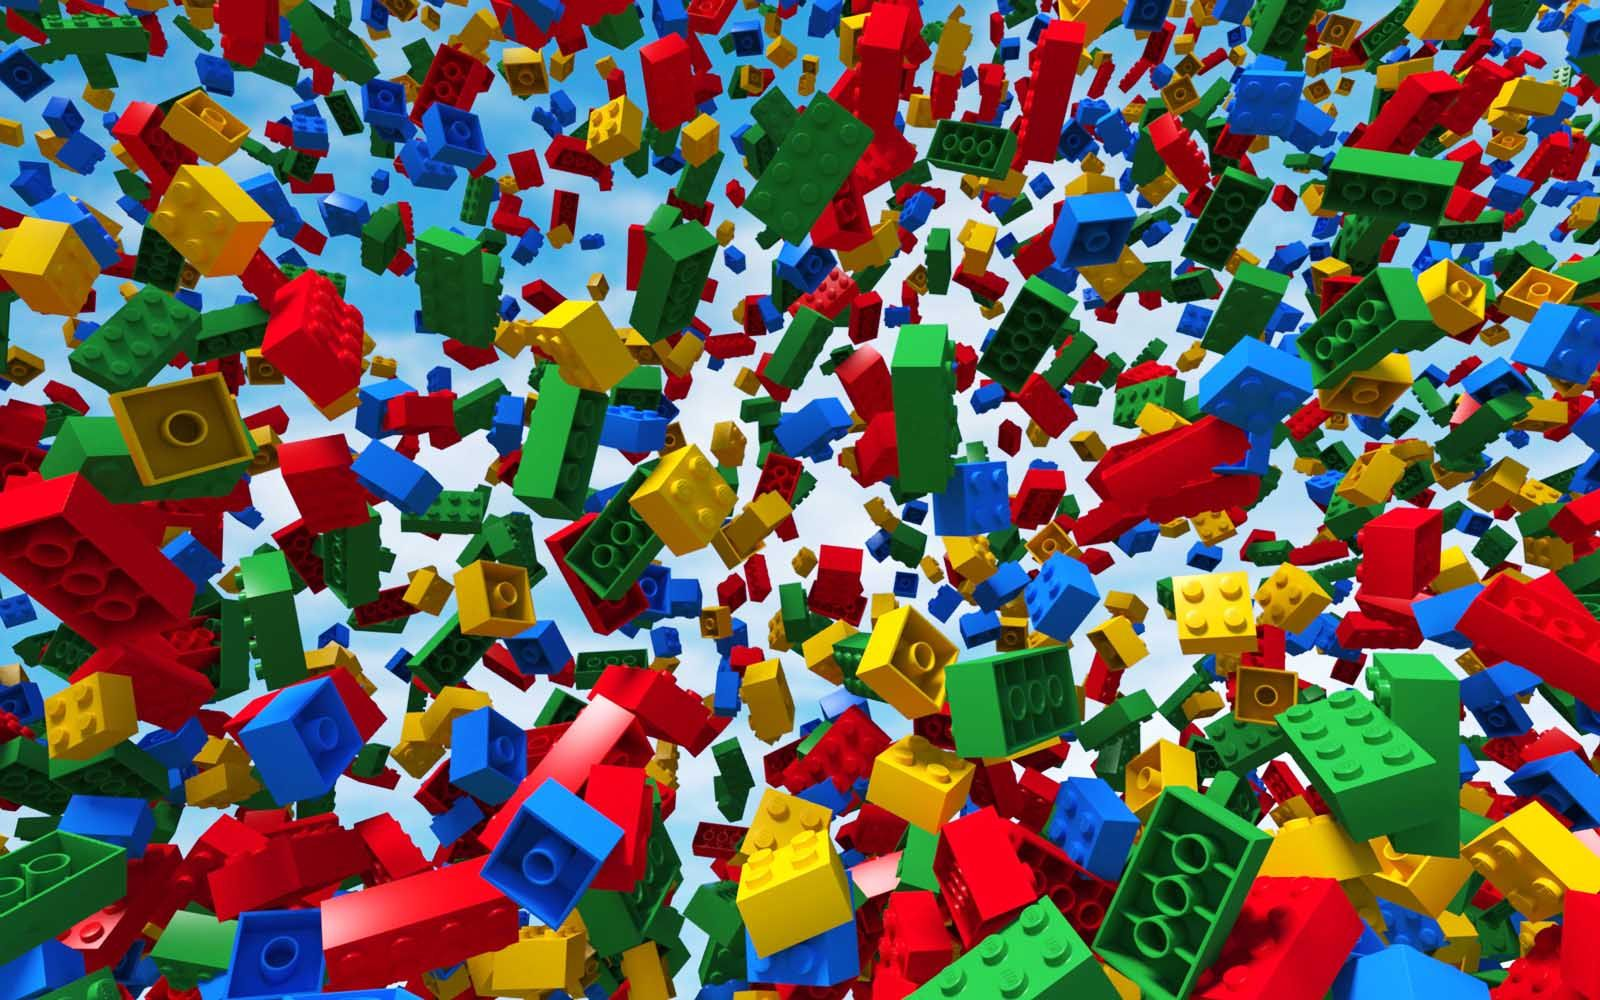 lego wallpaper that is cool probably a bit overwhelming